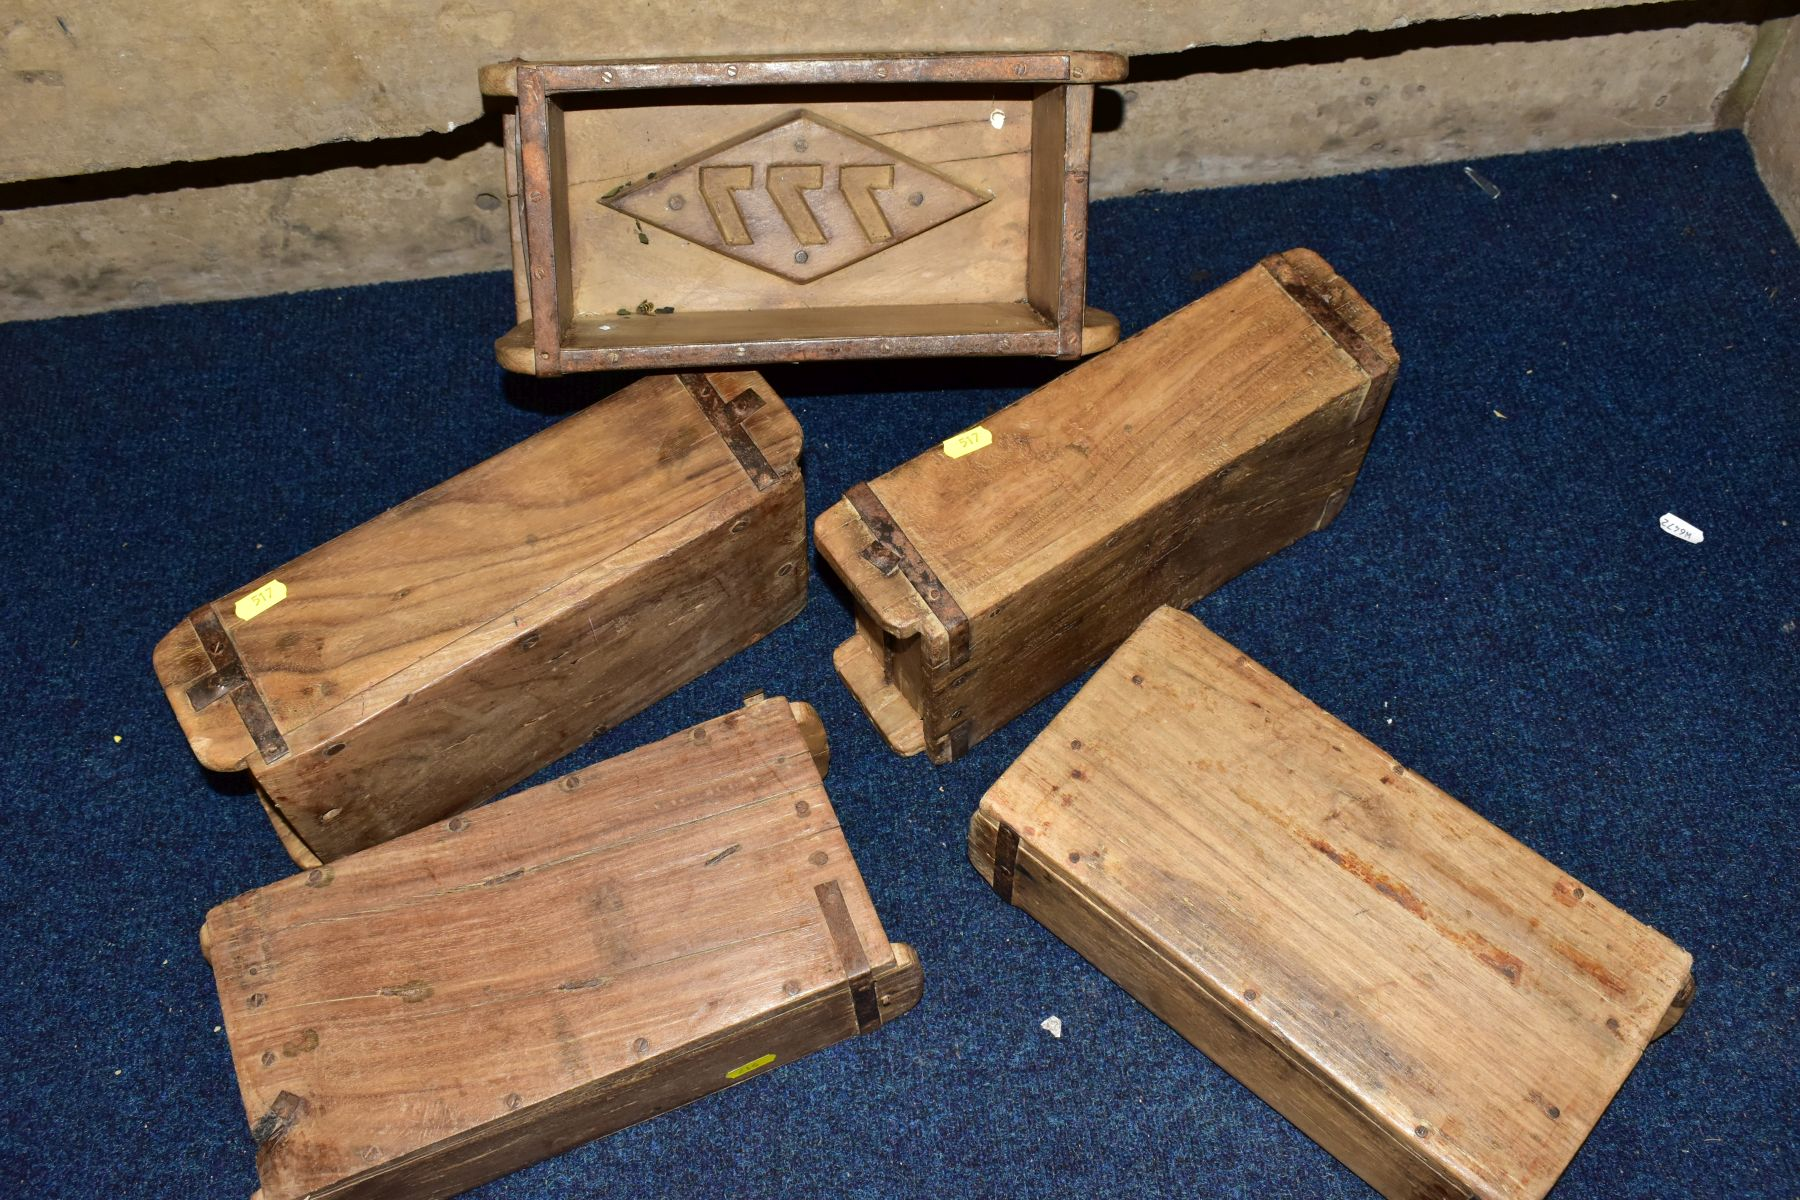 FIVE WOODEN AND METAL BOUND BRICKMAKERS MOULDS, all five with initials/numbers to the interiors, - Image 5 of 5